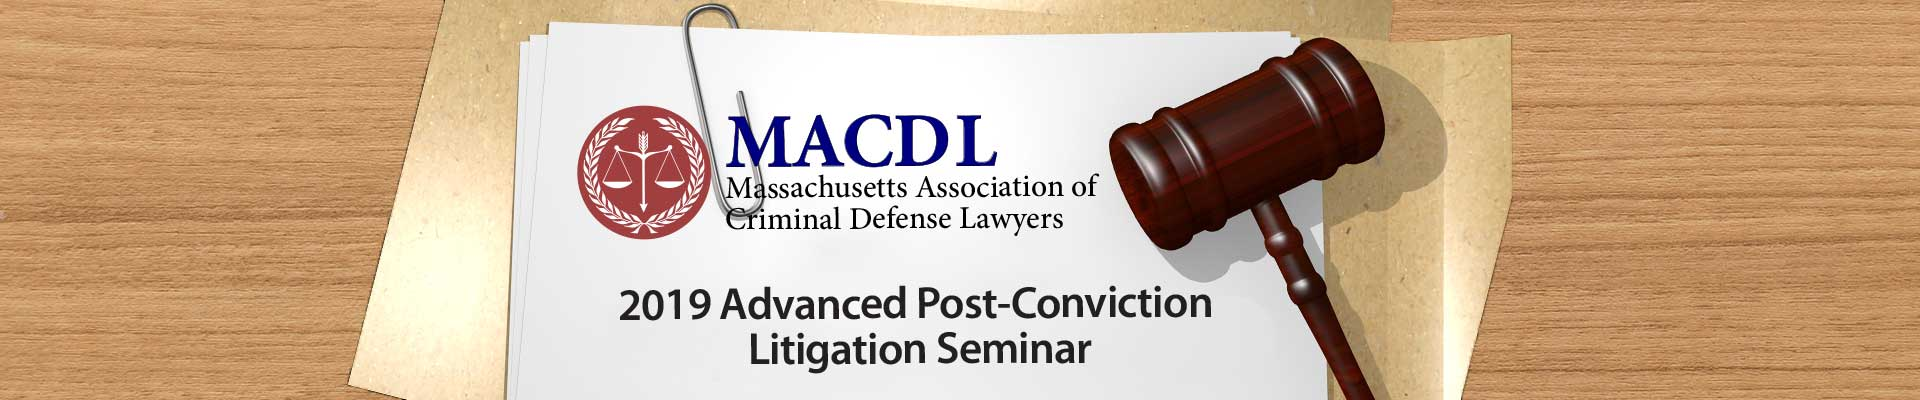 2019 Post-Conviction Litigation Seminar